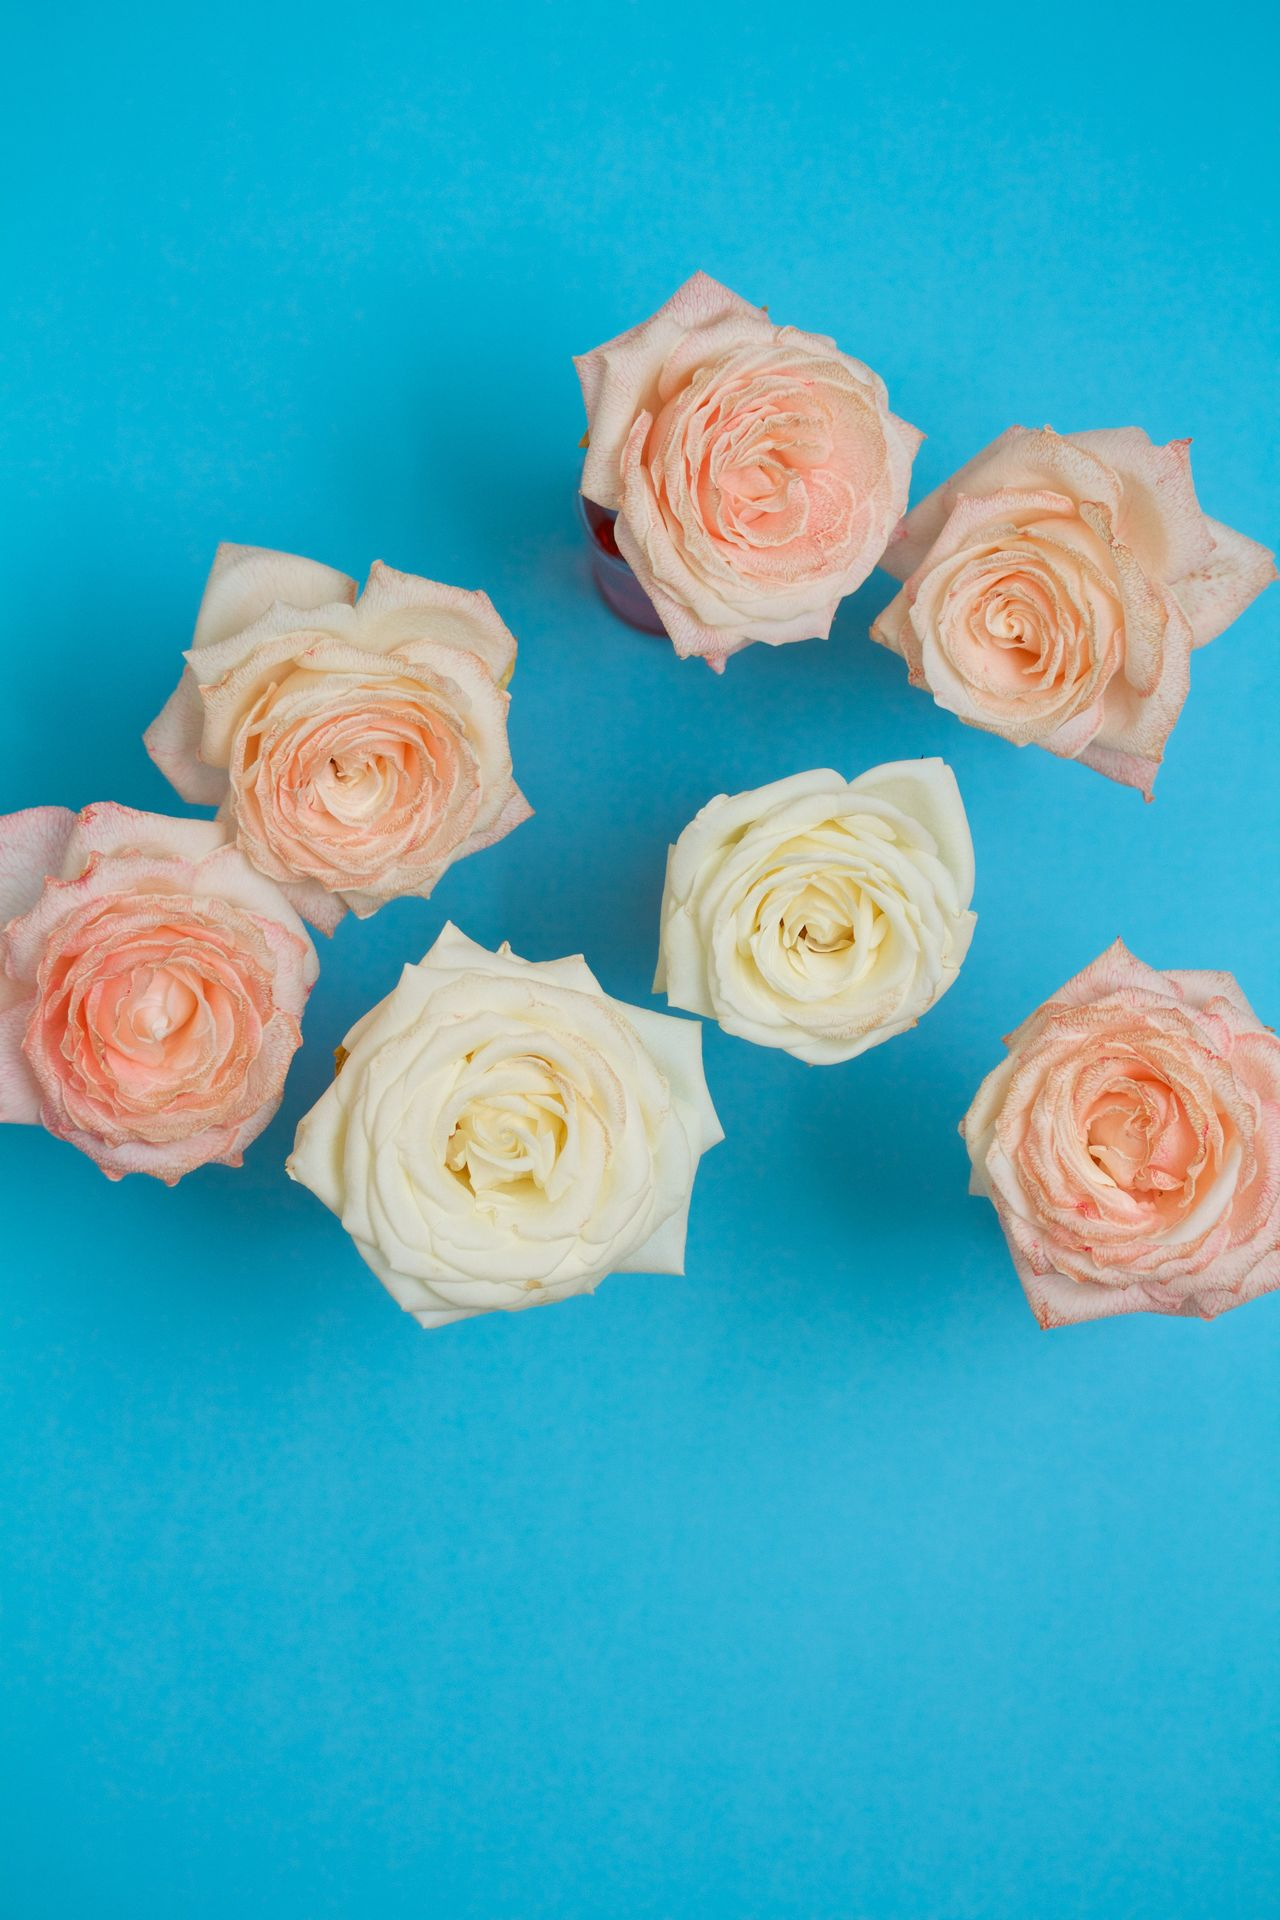 Pink and white roses on blue background Blue Blue Background Flower Flower Head Fragility Indoors  Nature No People Pink Roses White Roses